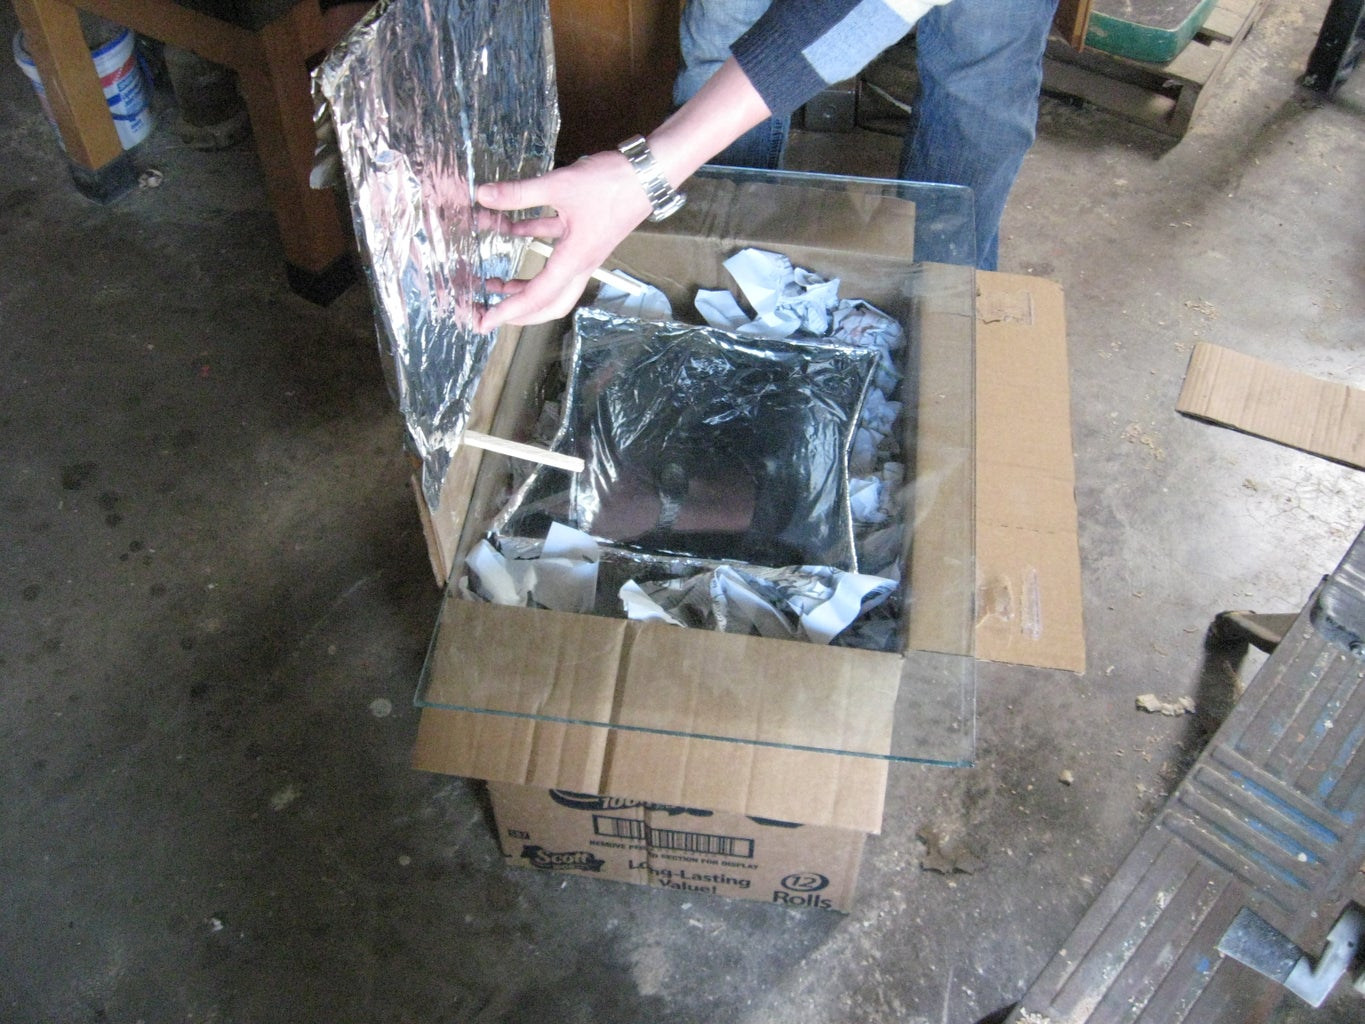 Place Glass or Plastic on Top of Large Box